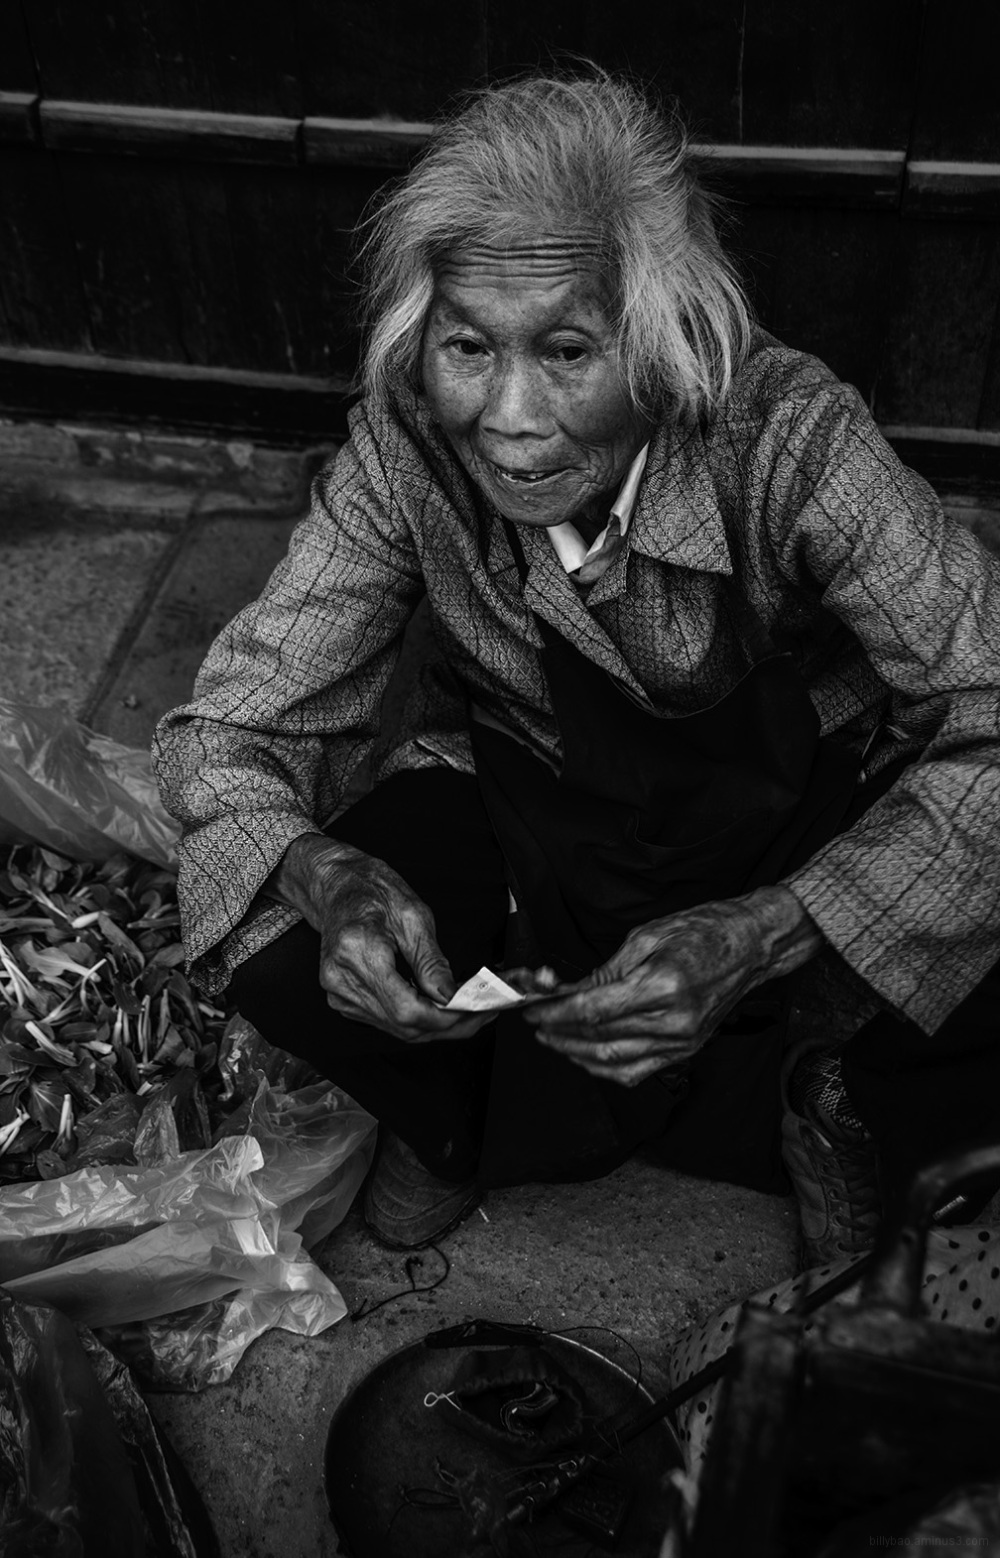 Old Woman Street Vendor, Pudong - Shanghai